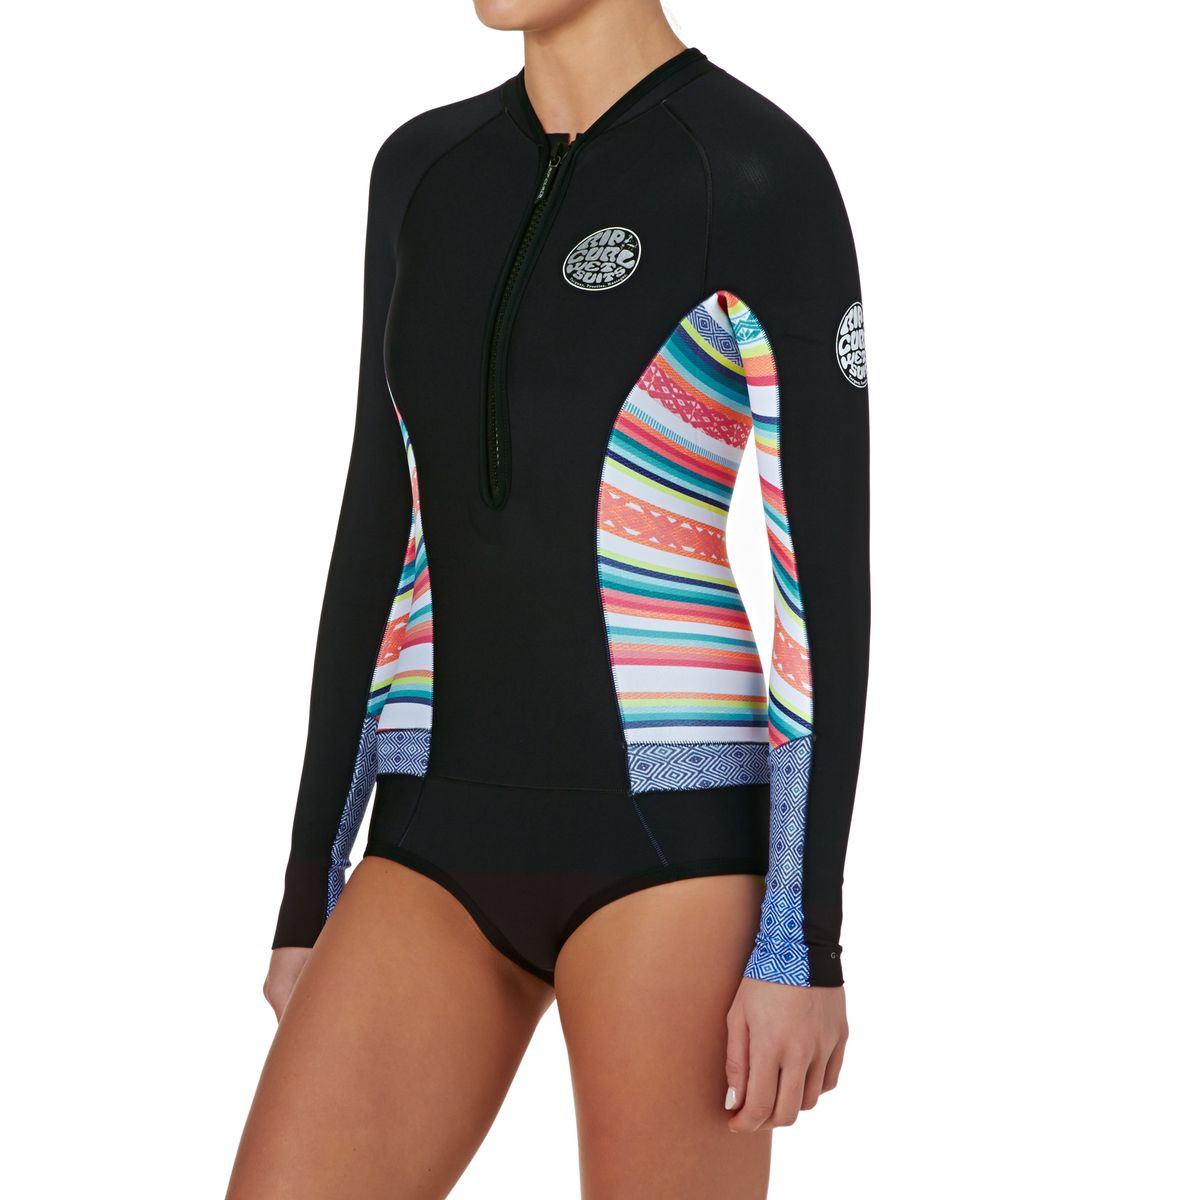 Rip Curl Womens G-bomb 1mm Front Zip Long Sleeve Hi Cut Shorty Wetsuit - Stripe